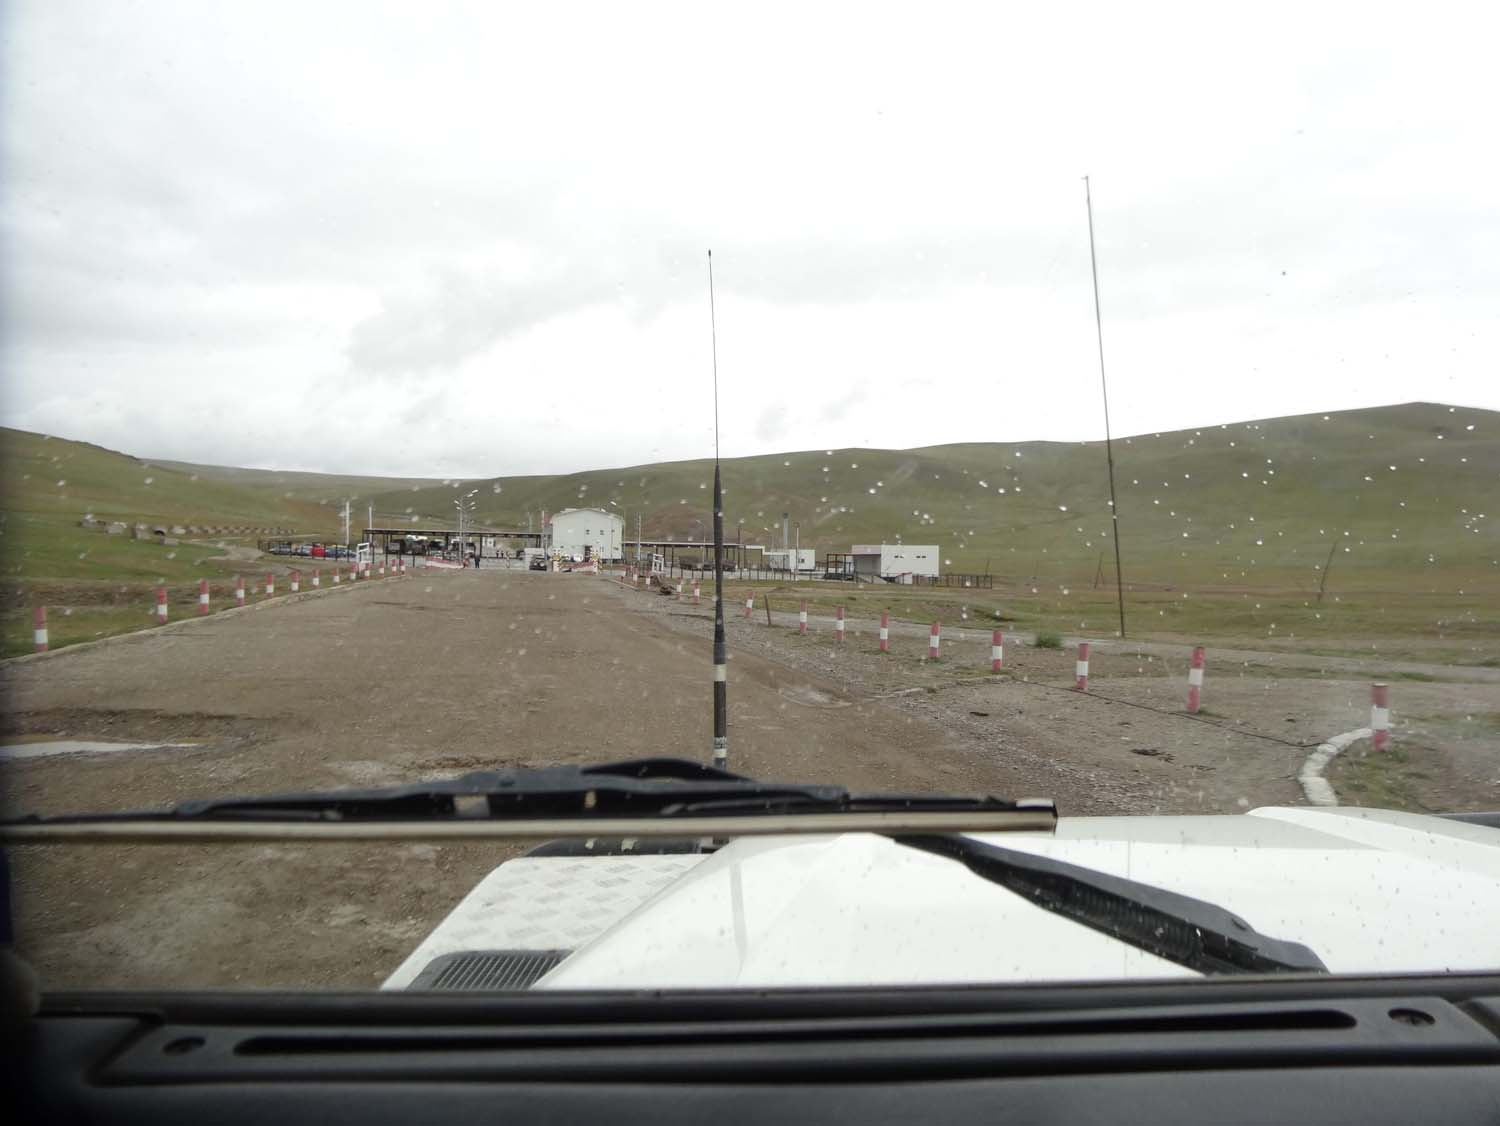 view of the Mongolian border post with the Mongol Rally people parked on the left. Leaving Mongolia you drive to the right hand side of the building and park there before entering the white building in the middle.